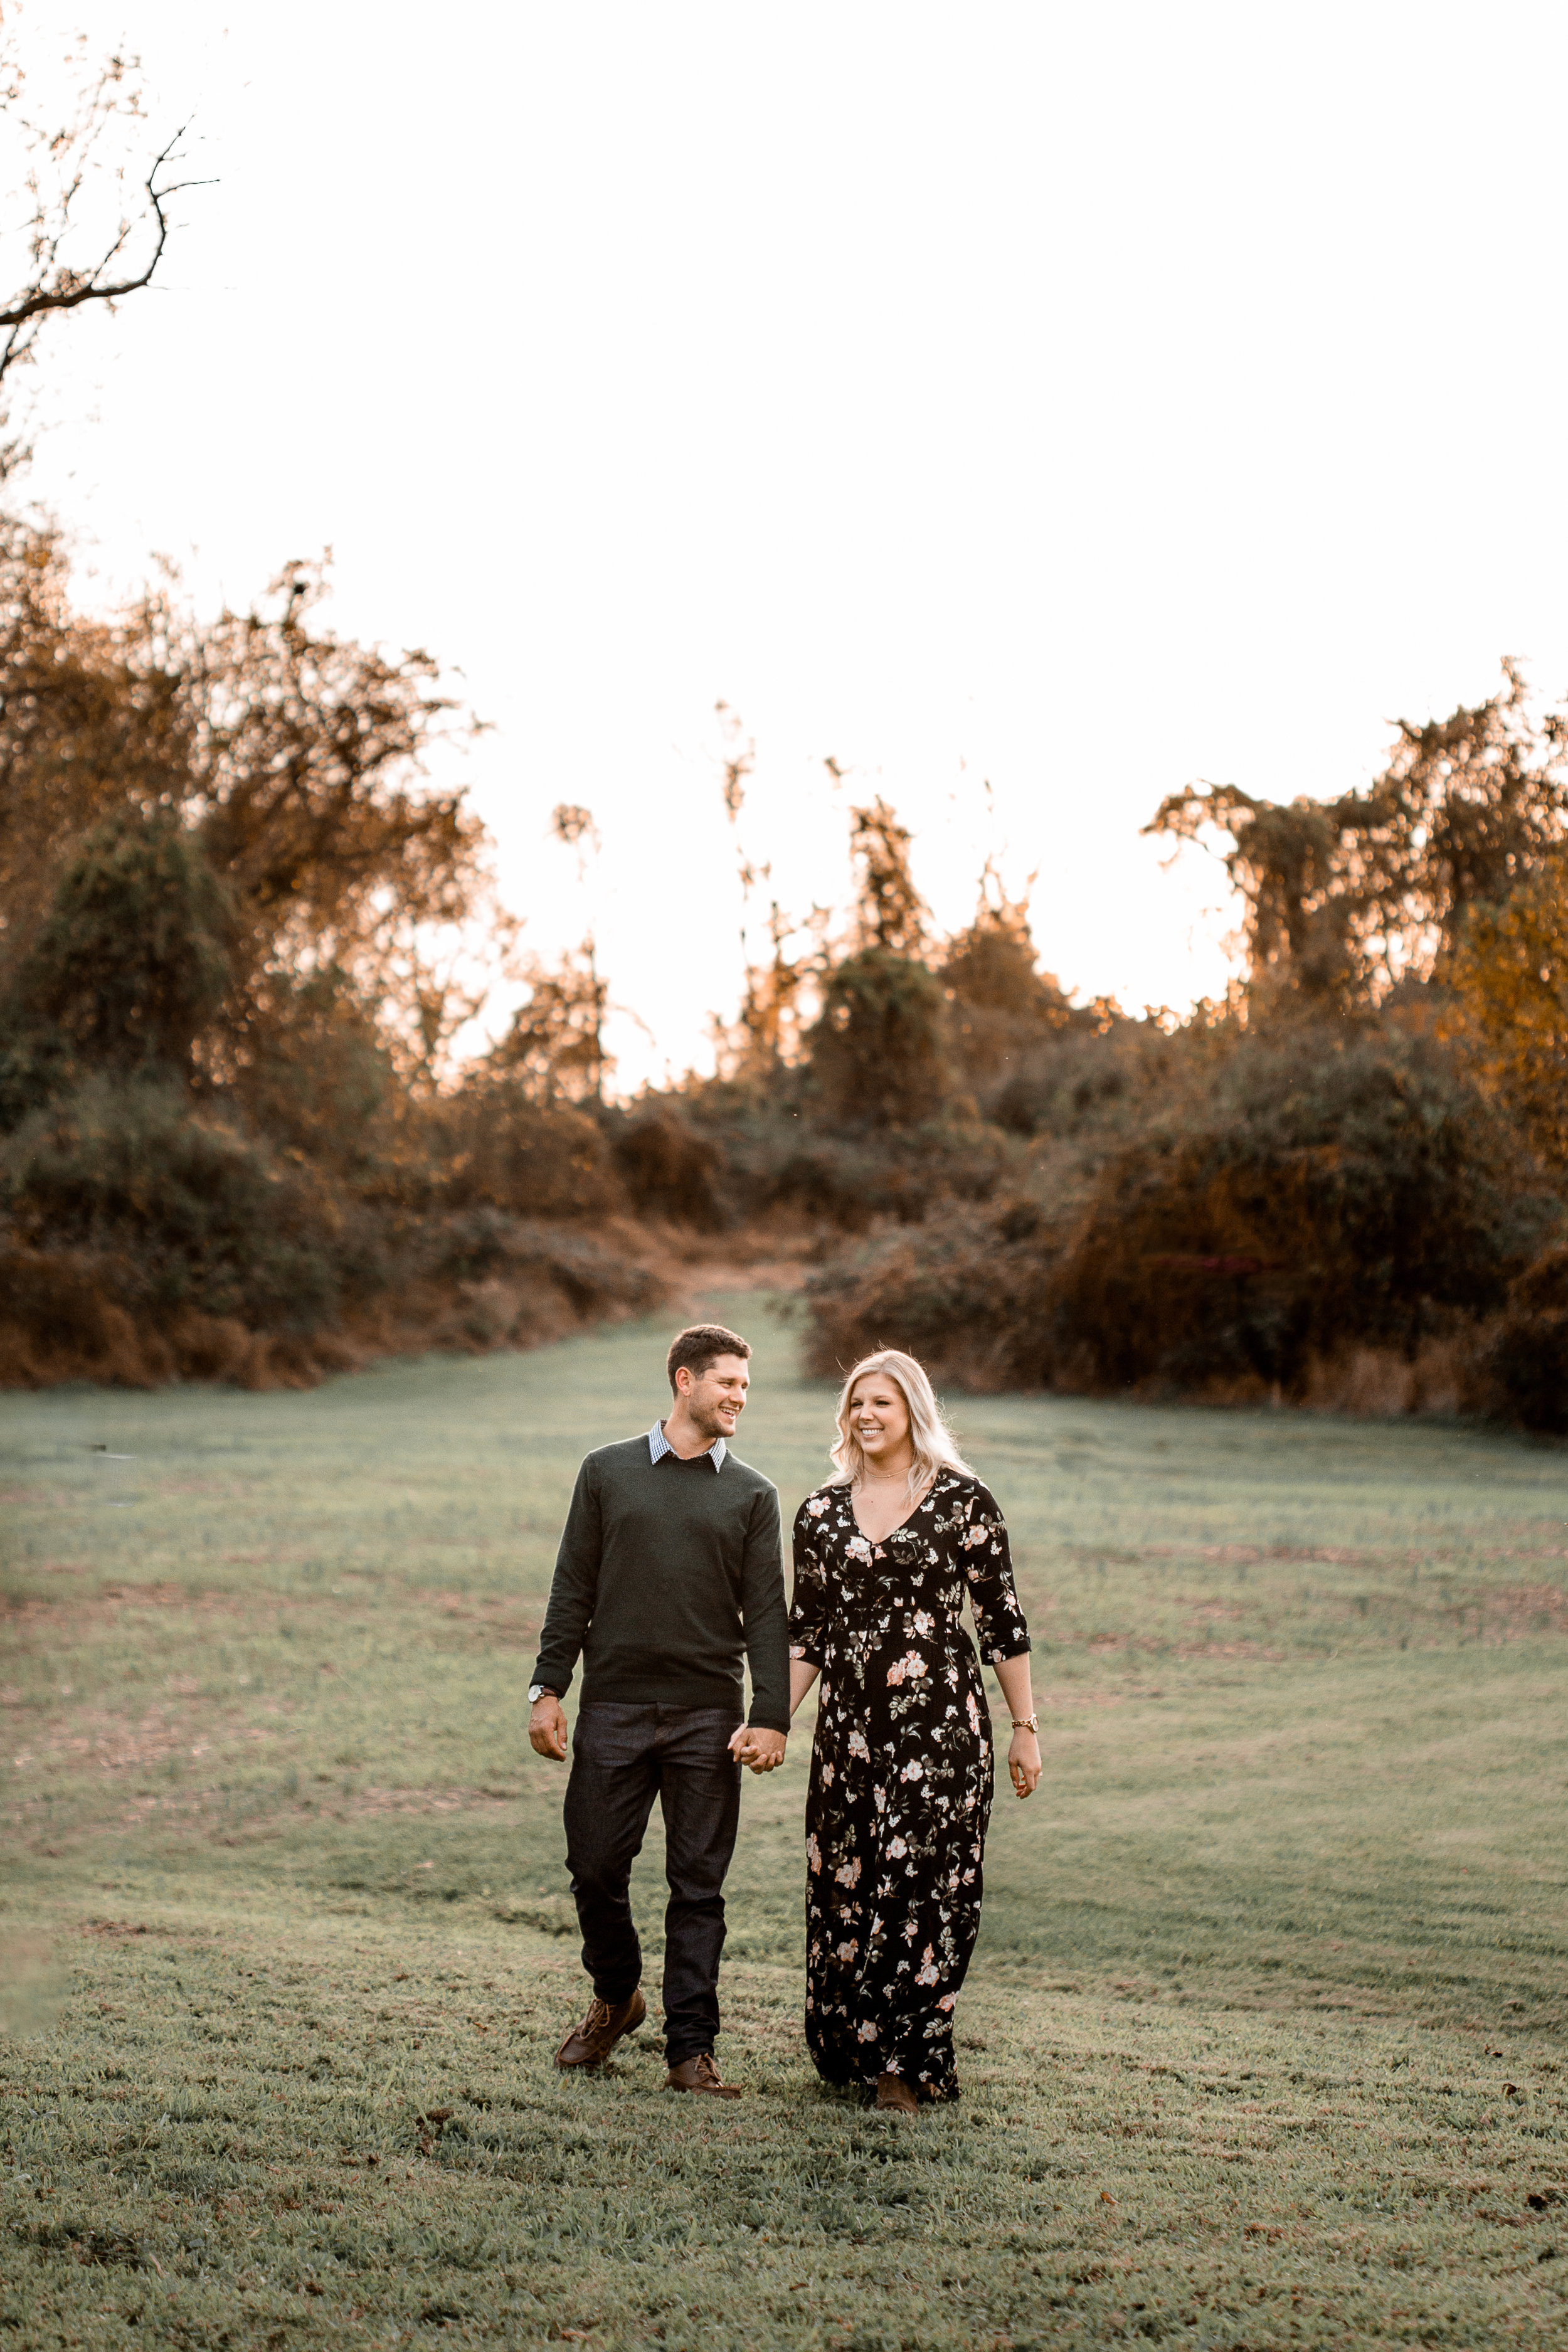 nicole-daacke-photography-carefree-bohemian-lancaster-pa-pennsylvania-engagement-photos-engagement-session-golden-sunset-adventure-session-in-lancaster-pa-lancaster-pa-outdoor-wedding-photographer-1.jpg